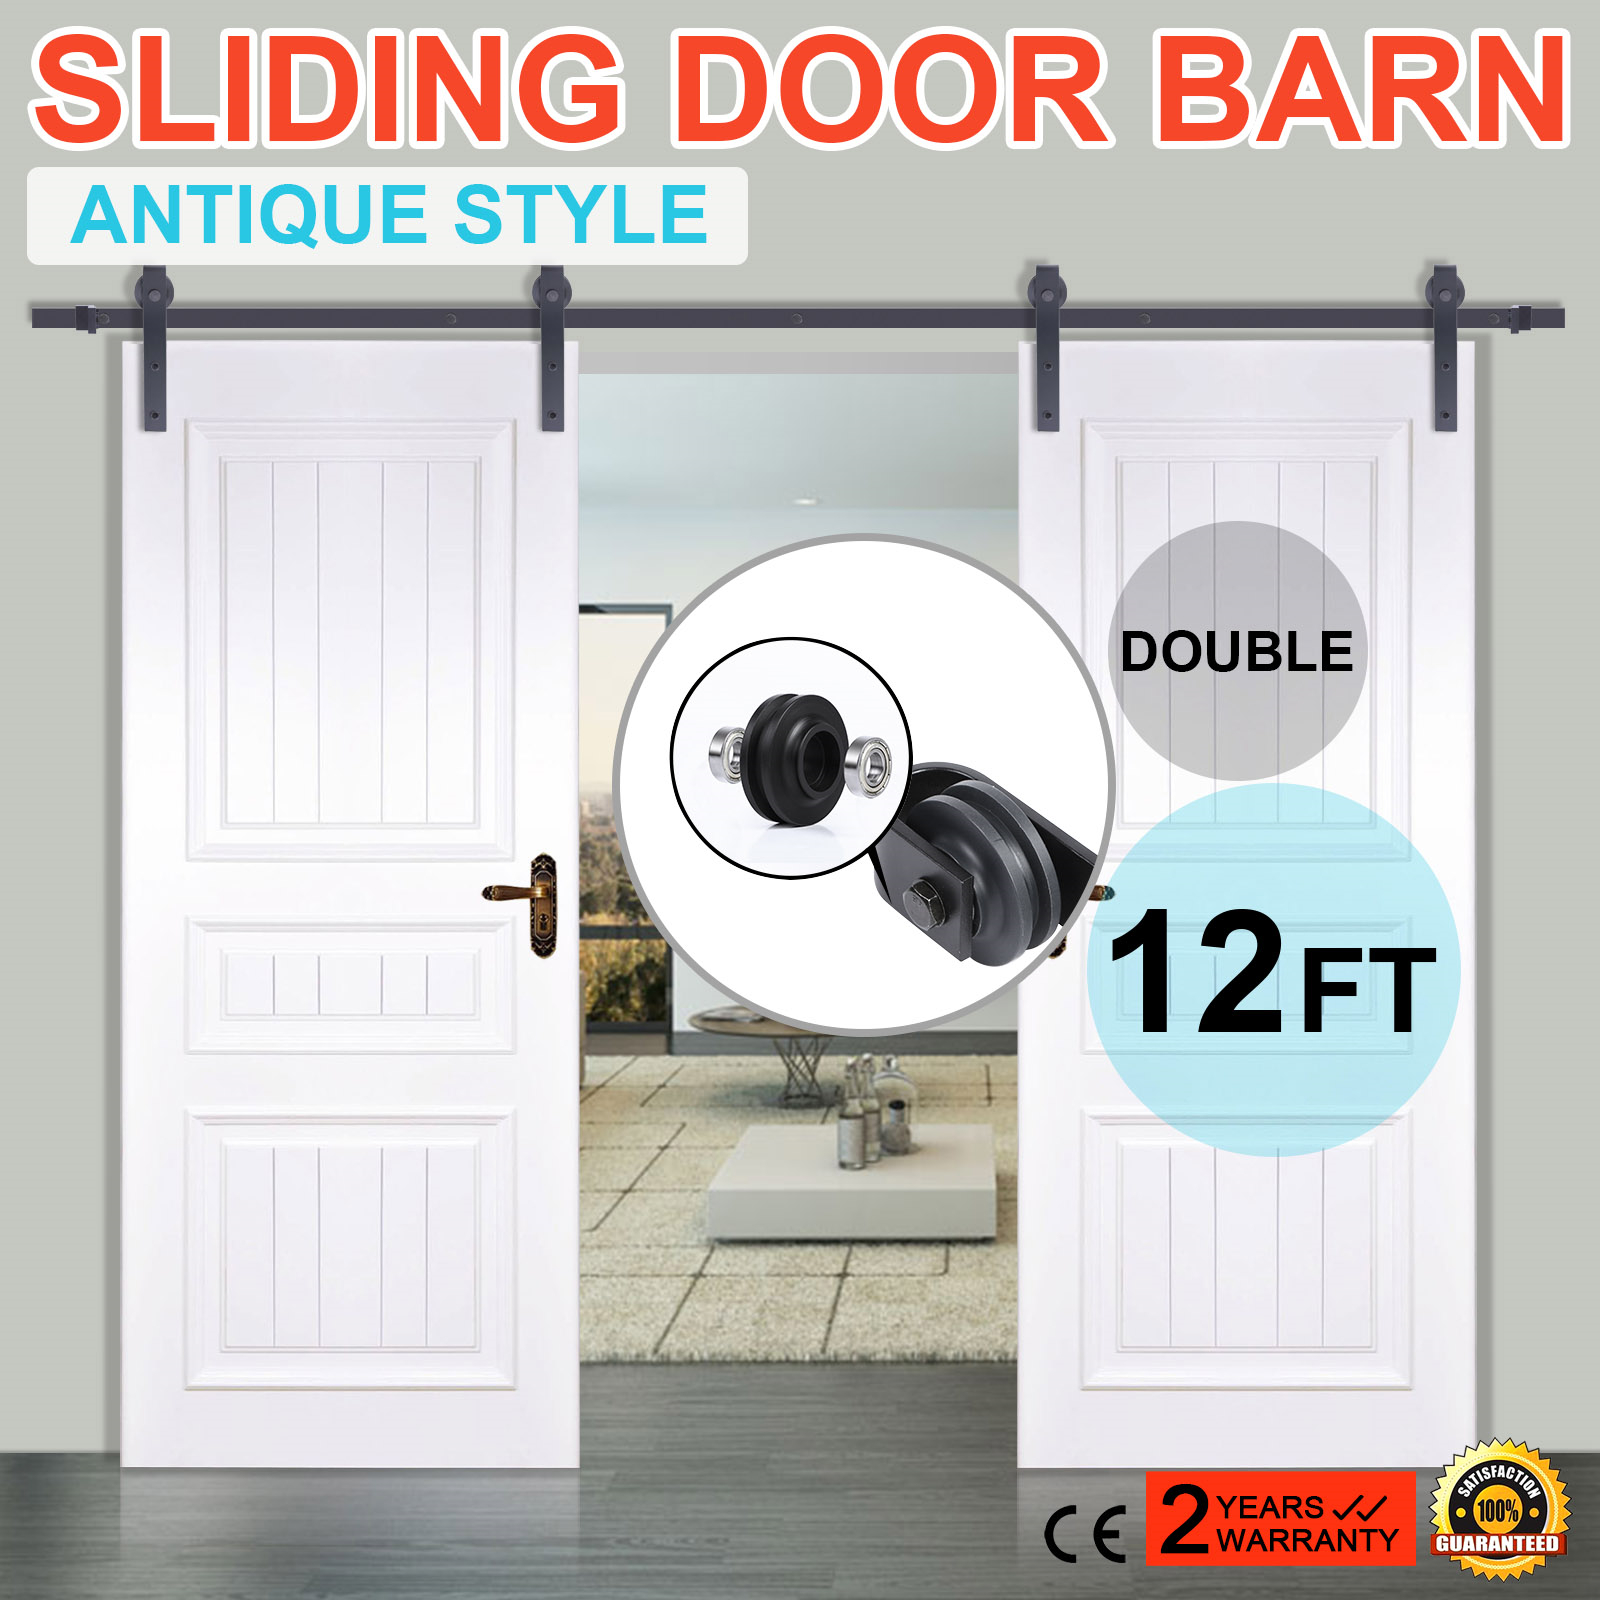 john barns make to sliding hardware barn decor how robinson kit door